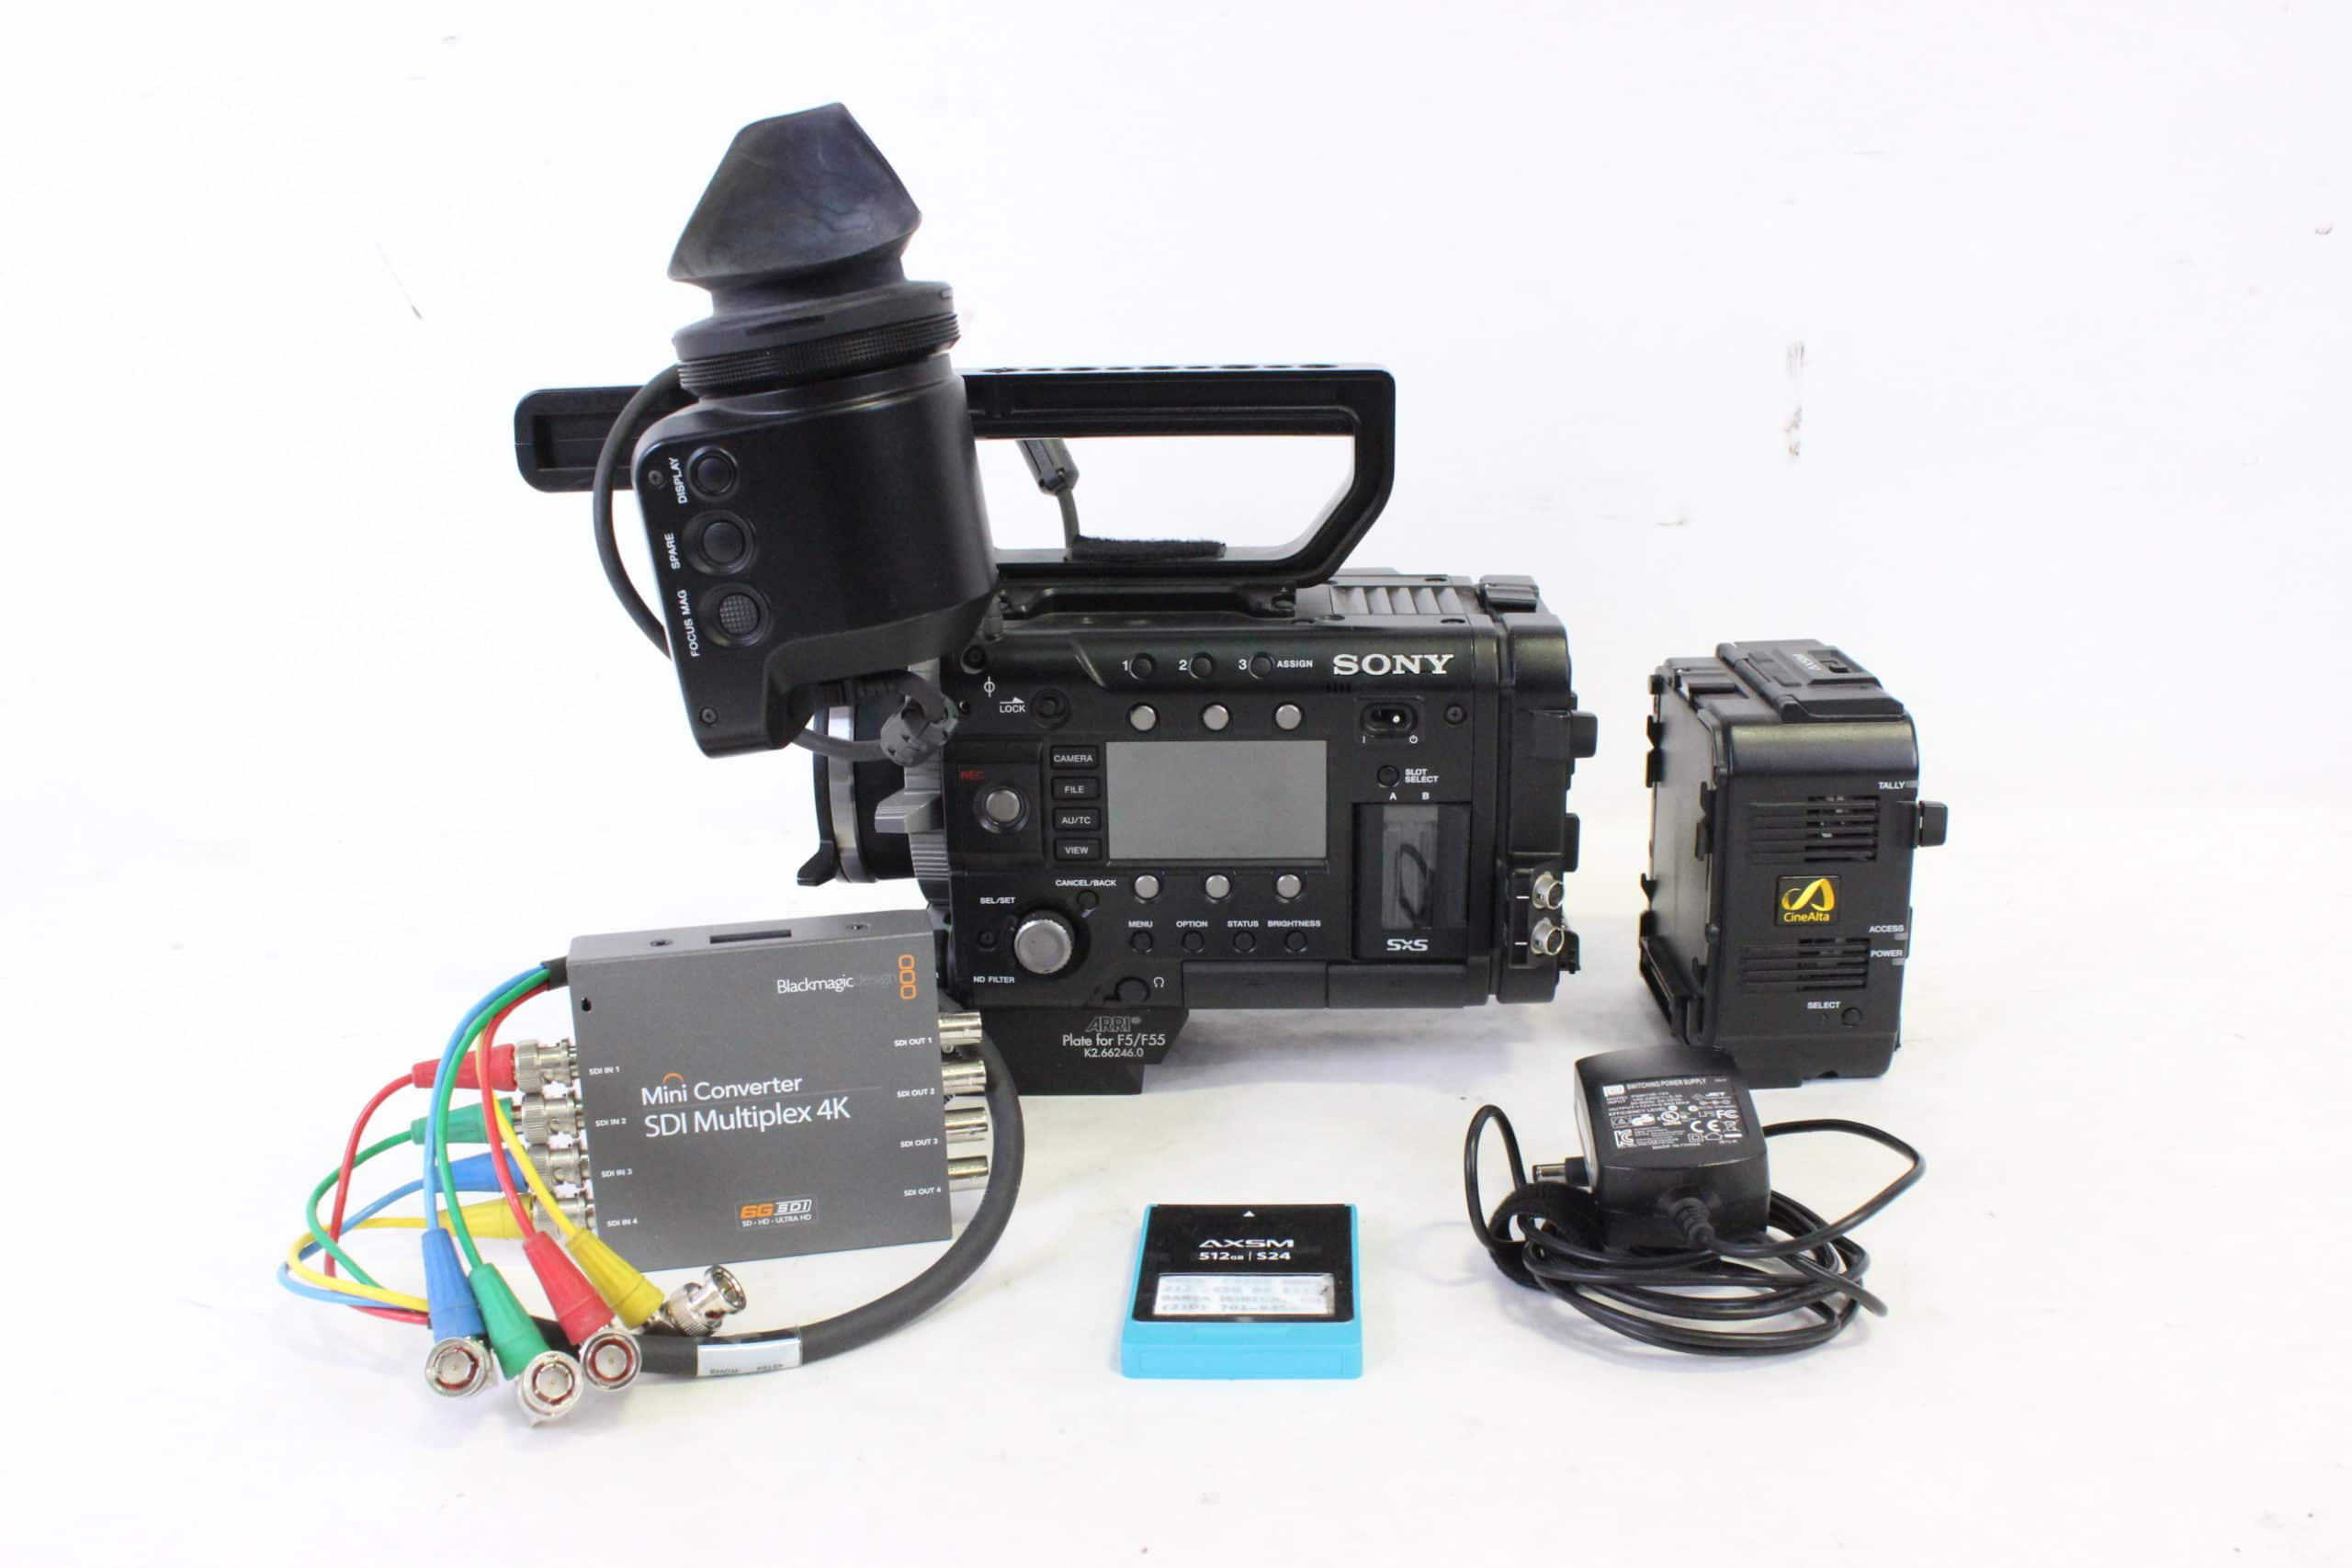 Sony PMW-F55 Solid State Memory Camcorder Kit w/ Sony DVF-EL100 Viewfinder / AXS-R5 Recorder & Blackmagic SDI Distribution 4K w/ Custom Case Main